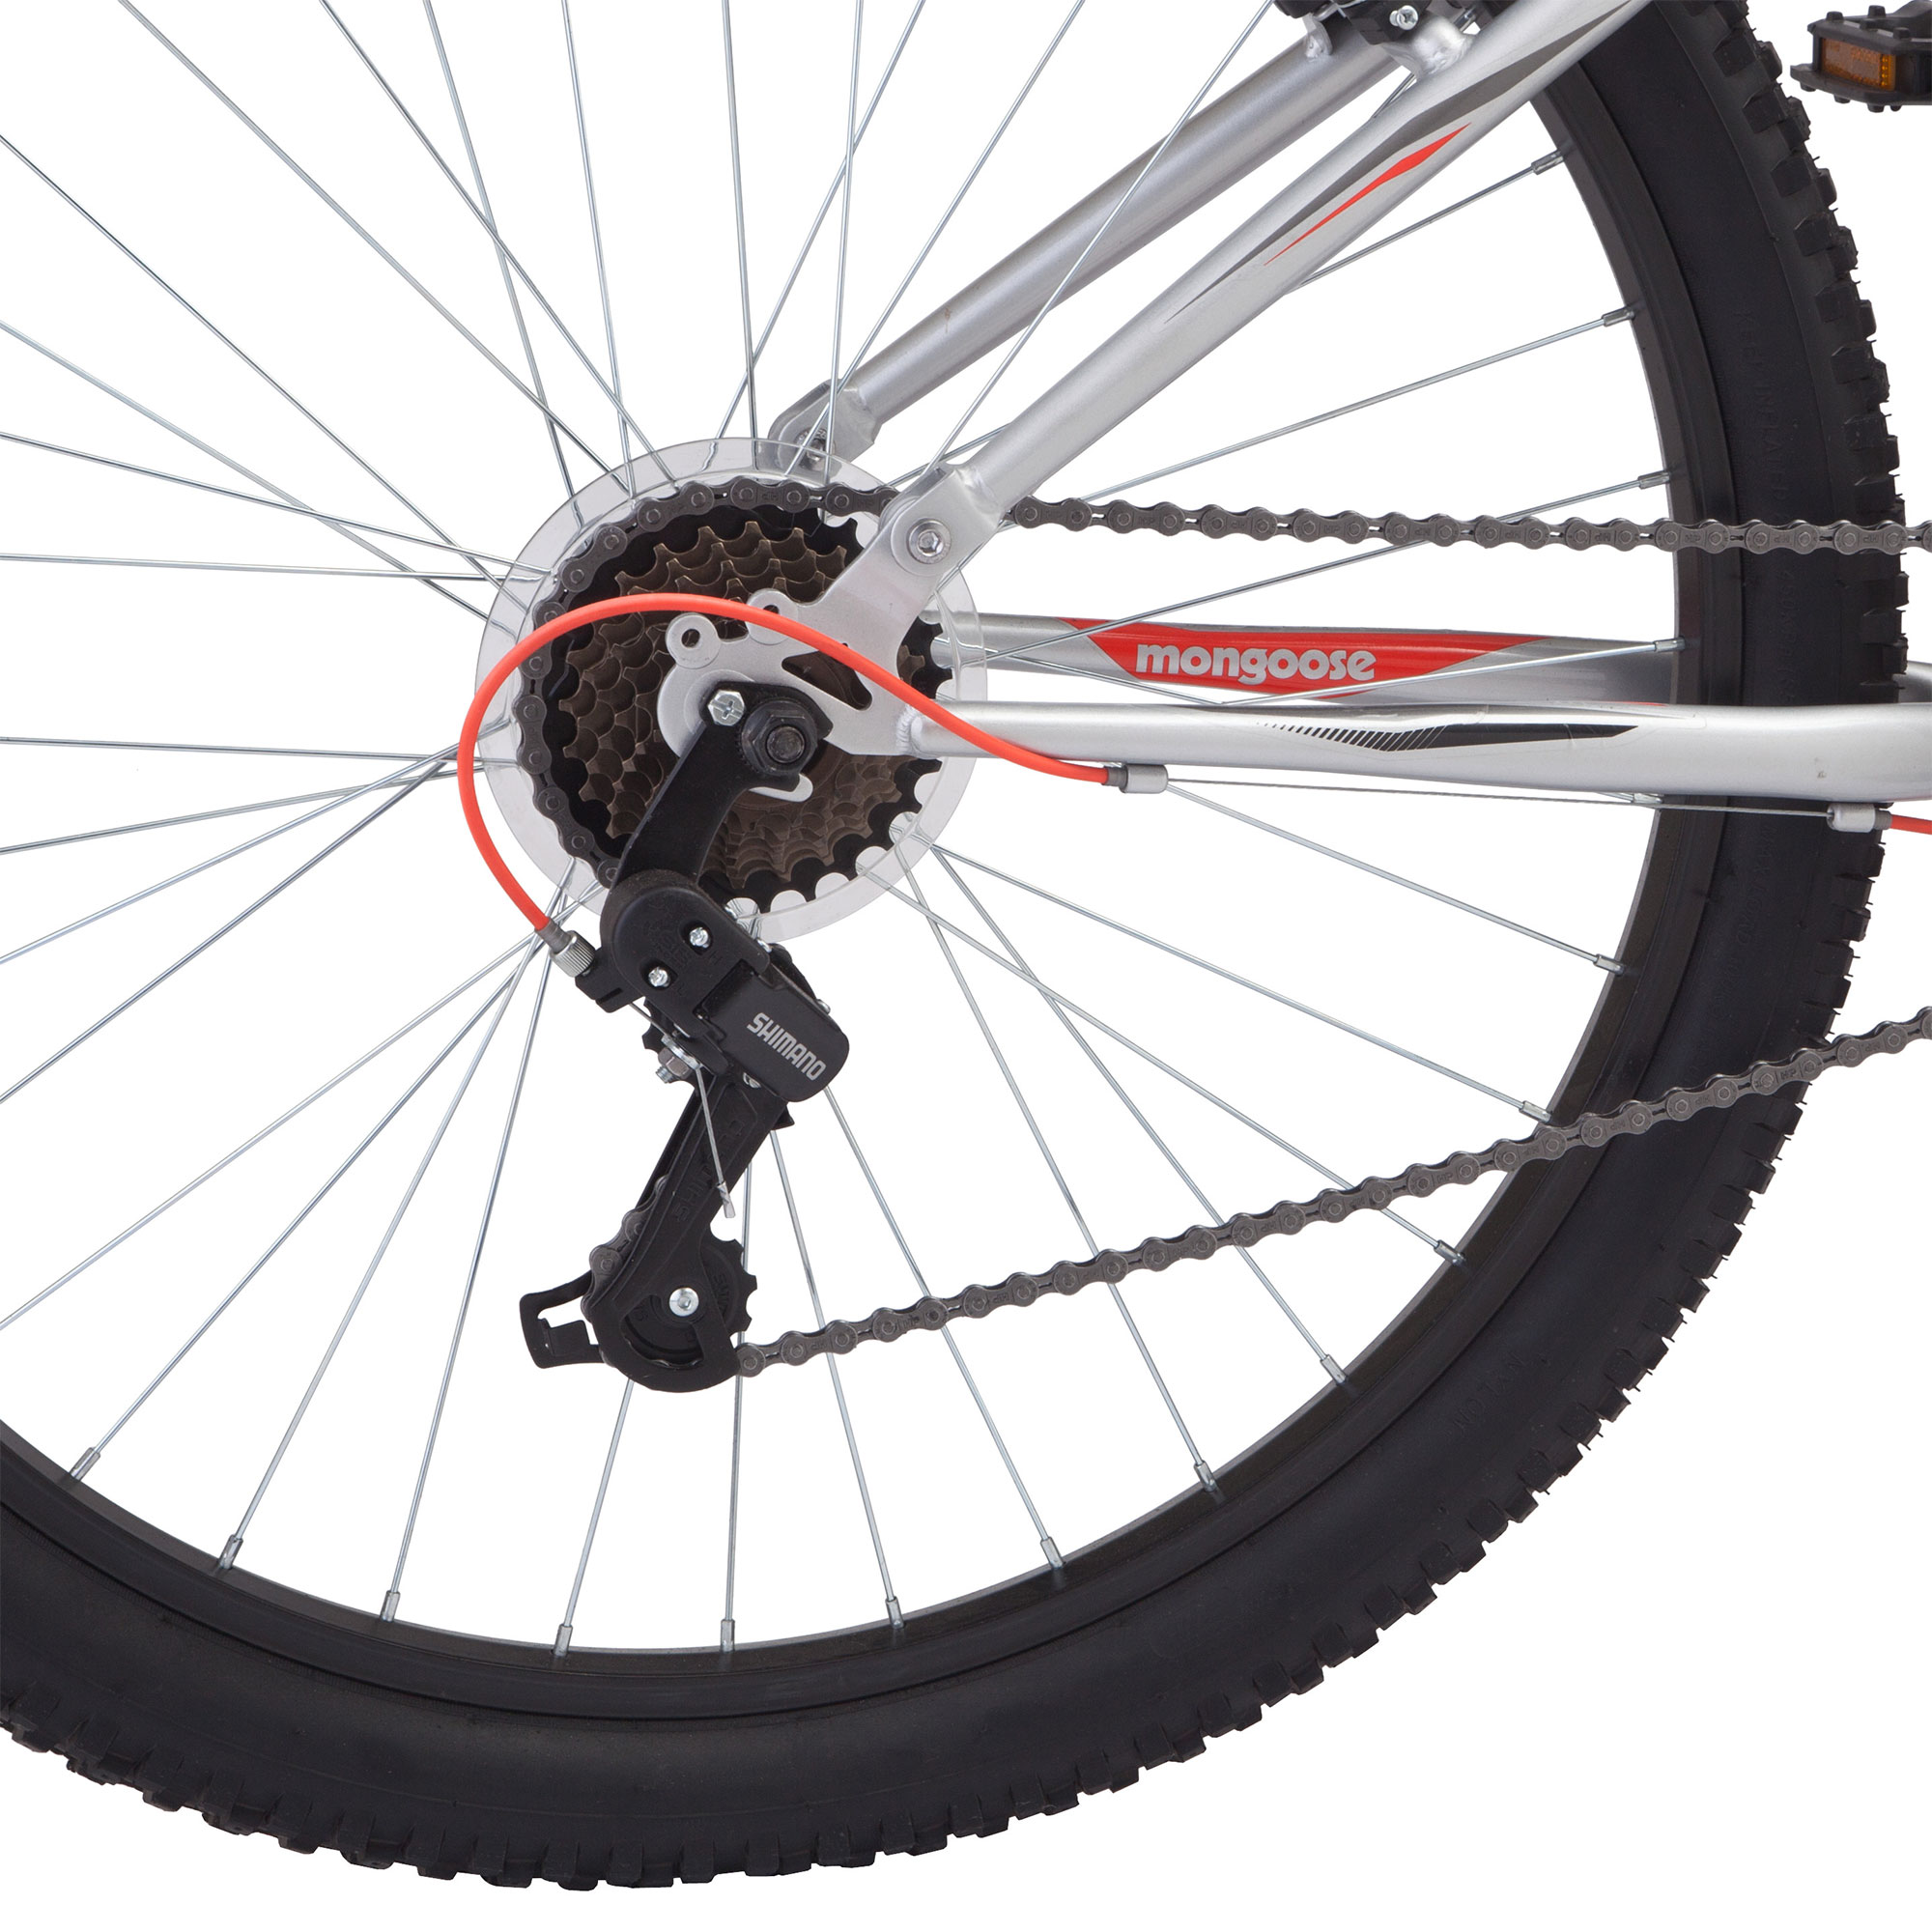 Mongoose Malus Fat Tire Bike is endowed and designed with rich features that ensure that every male rider enjoys their riding experience with the bike Just as it is